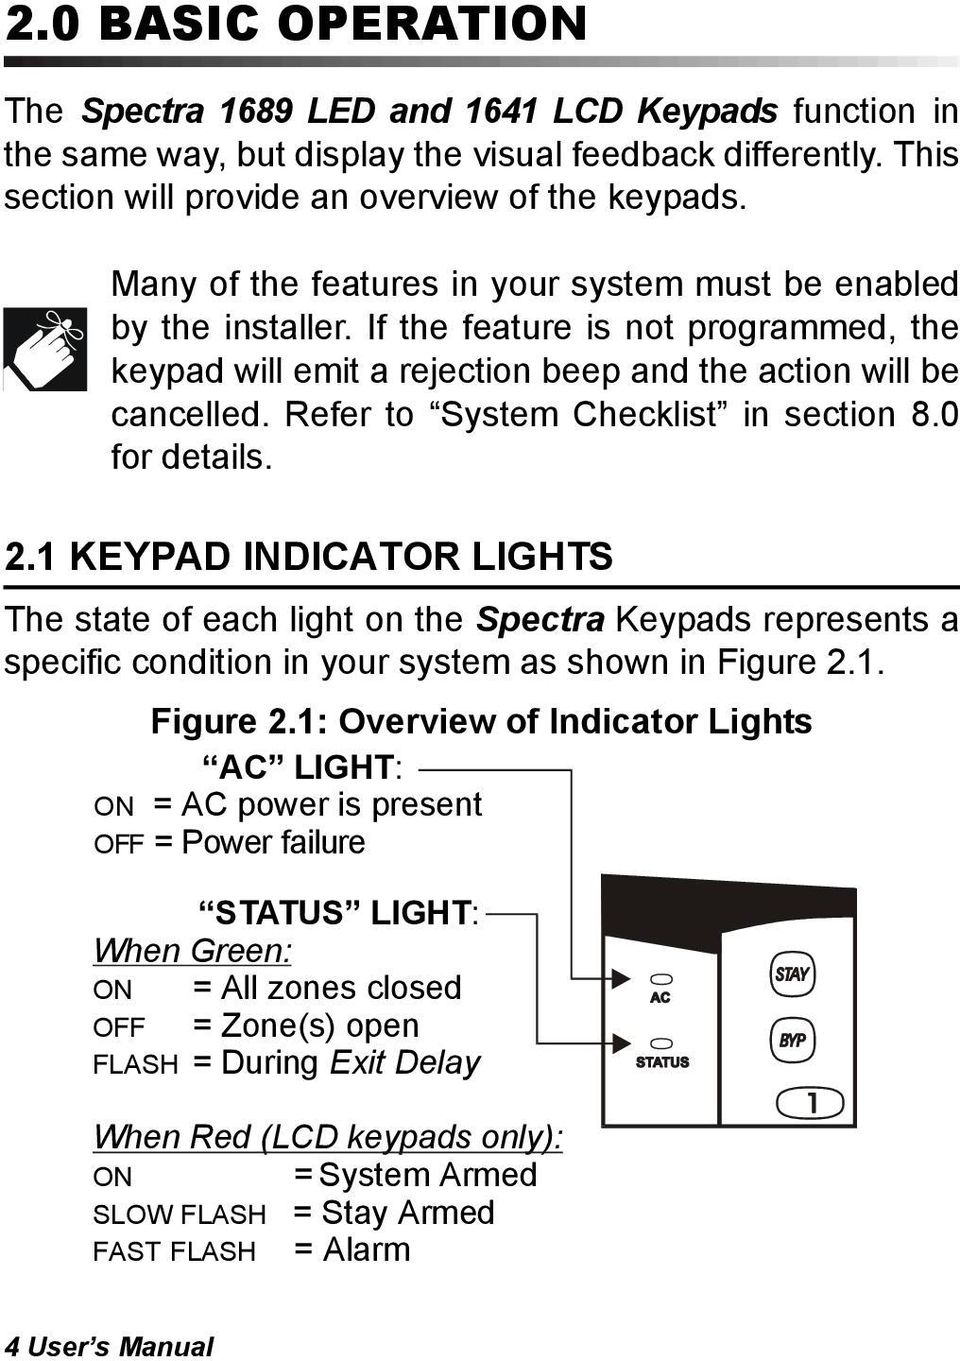 Refer to System Checklist in section 8.0 for details. 2.1 KEYPAD INDICATOR LIGHTS The state of each light on the Spectra Keypads represents a specific condition in your system as shown in Figure 2.